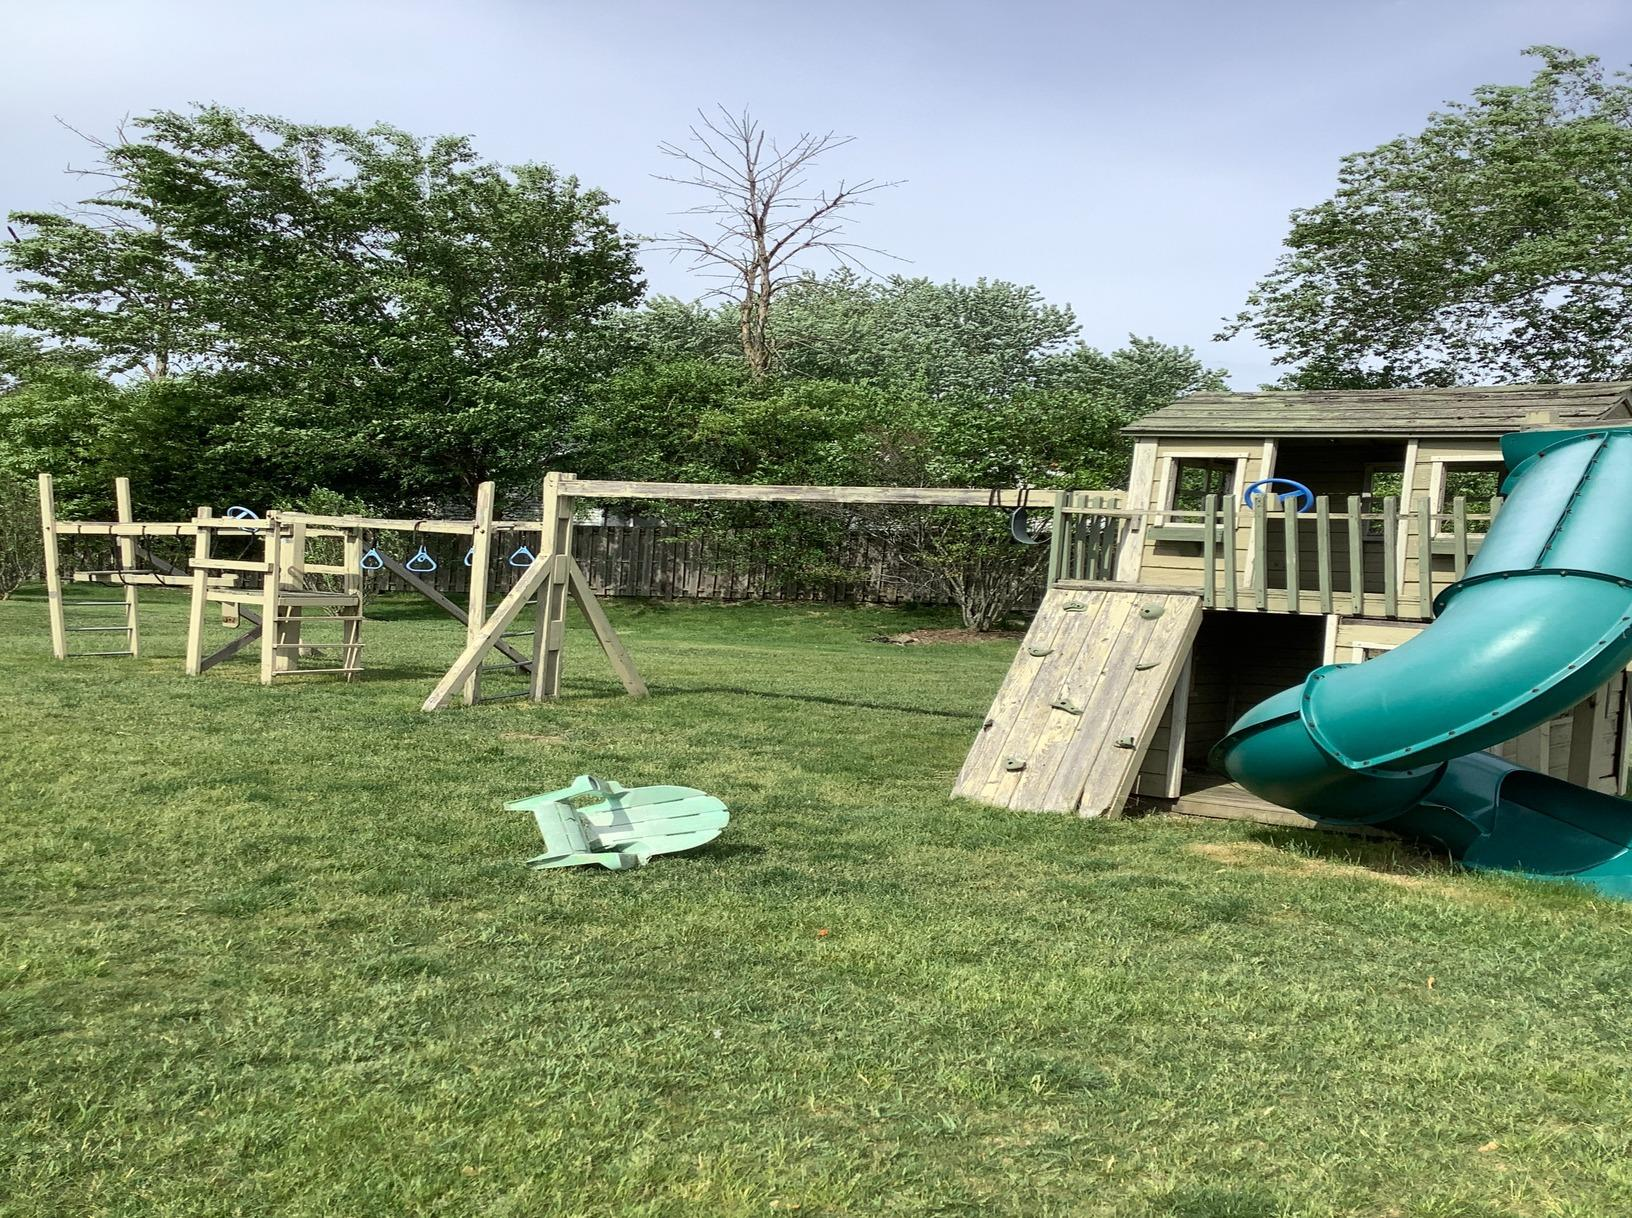 Saint Charles, IL Spring Cleaning Yard Debris Playground Removal - Before Photo